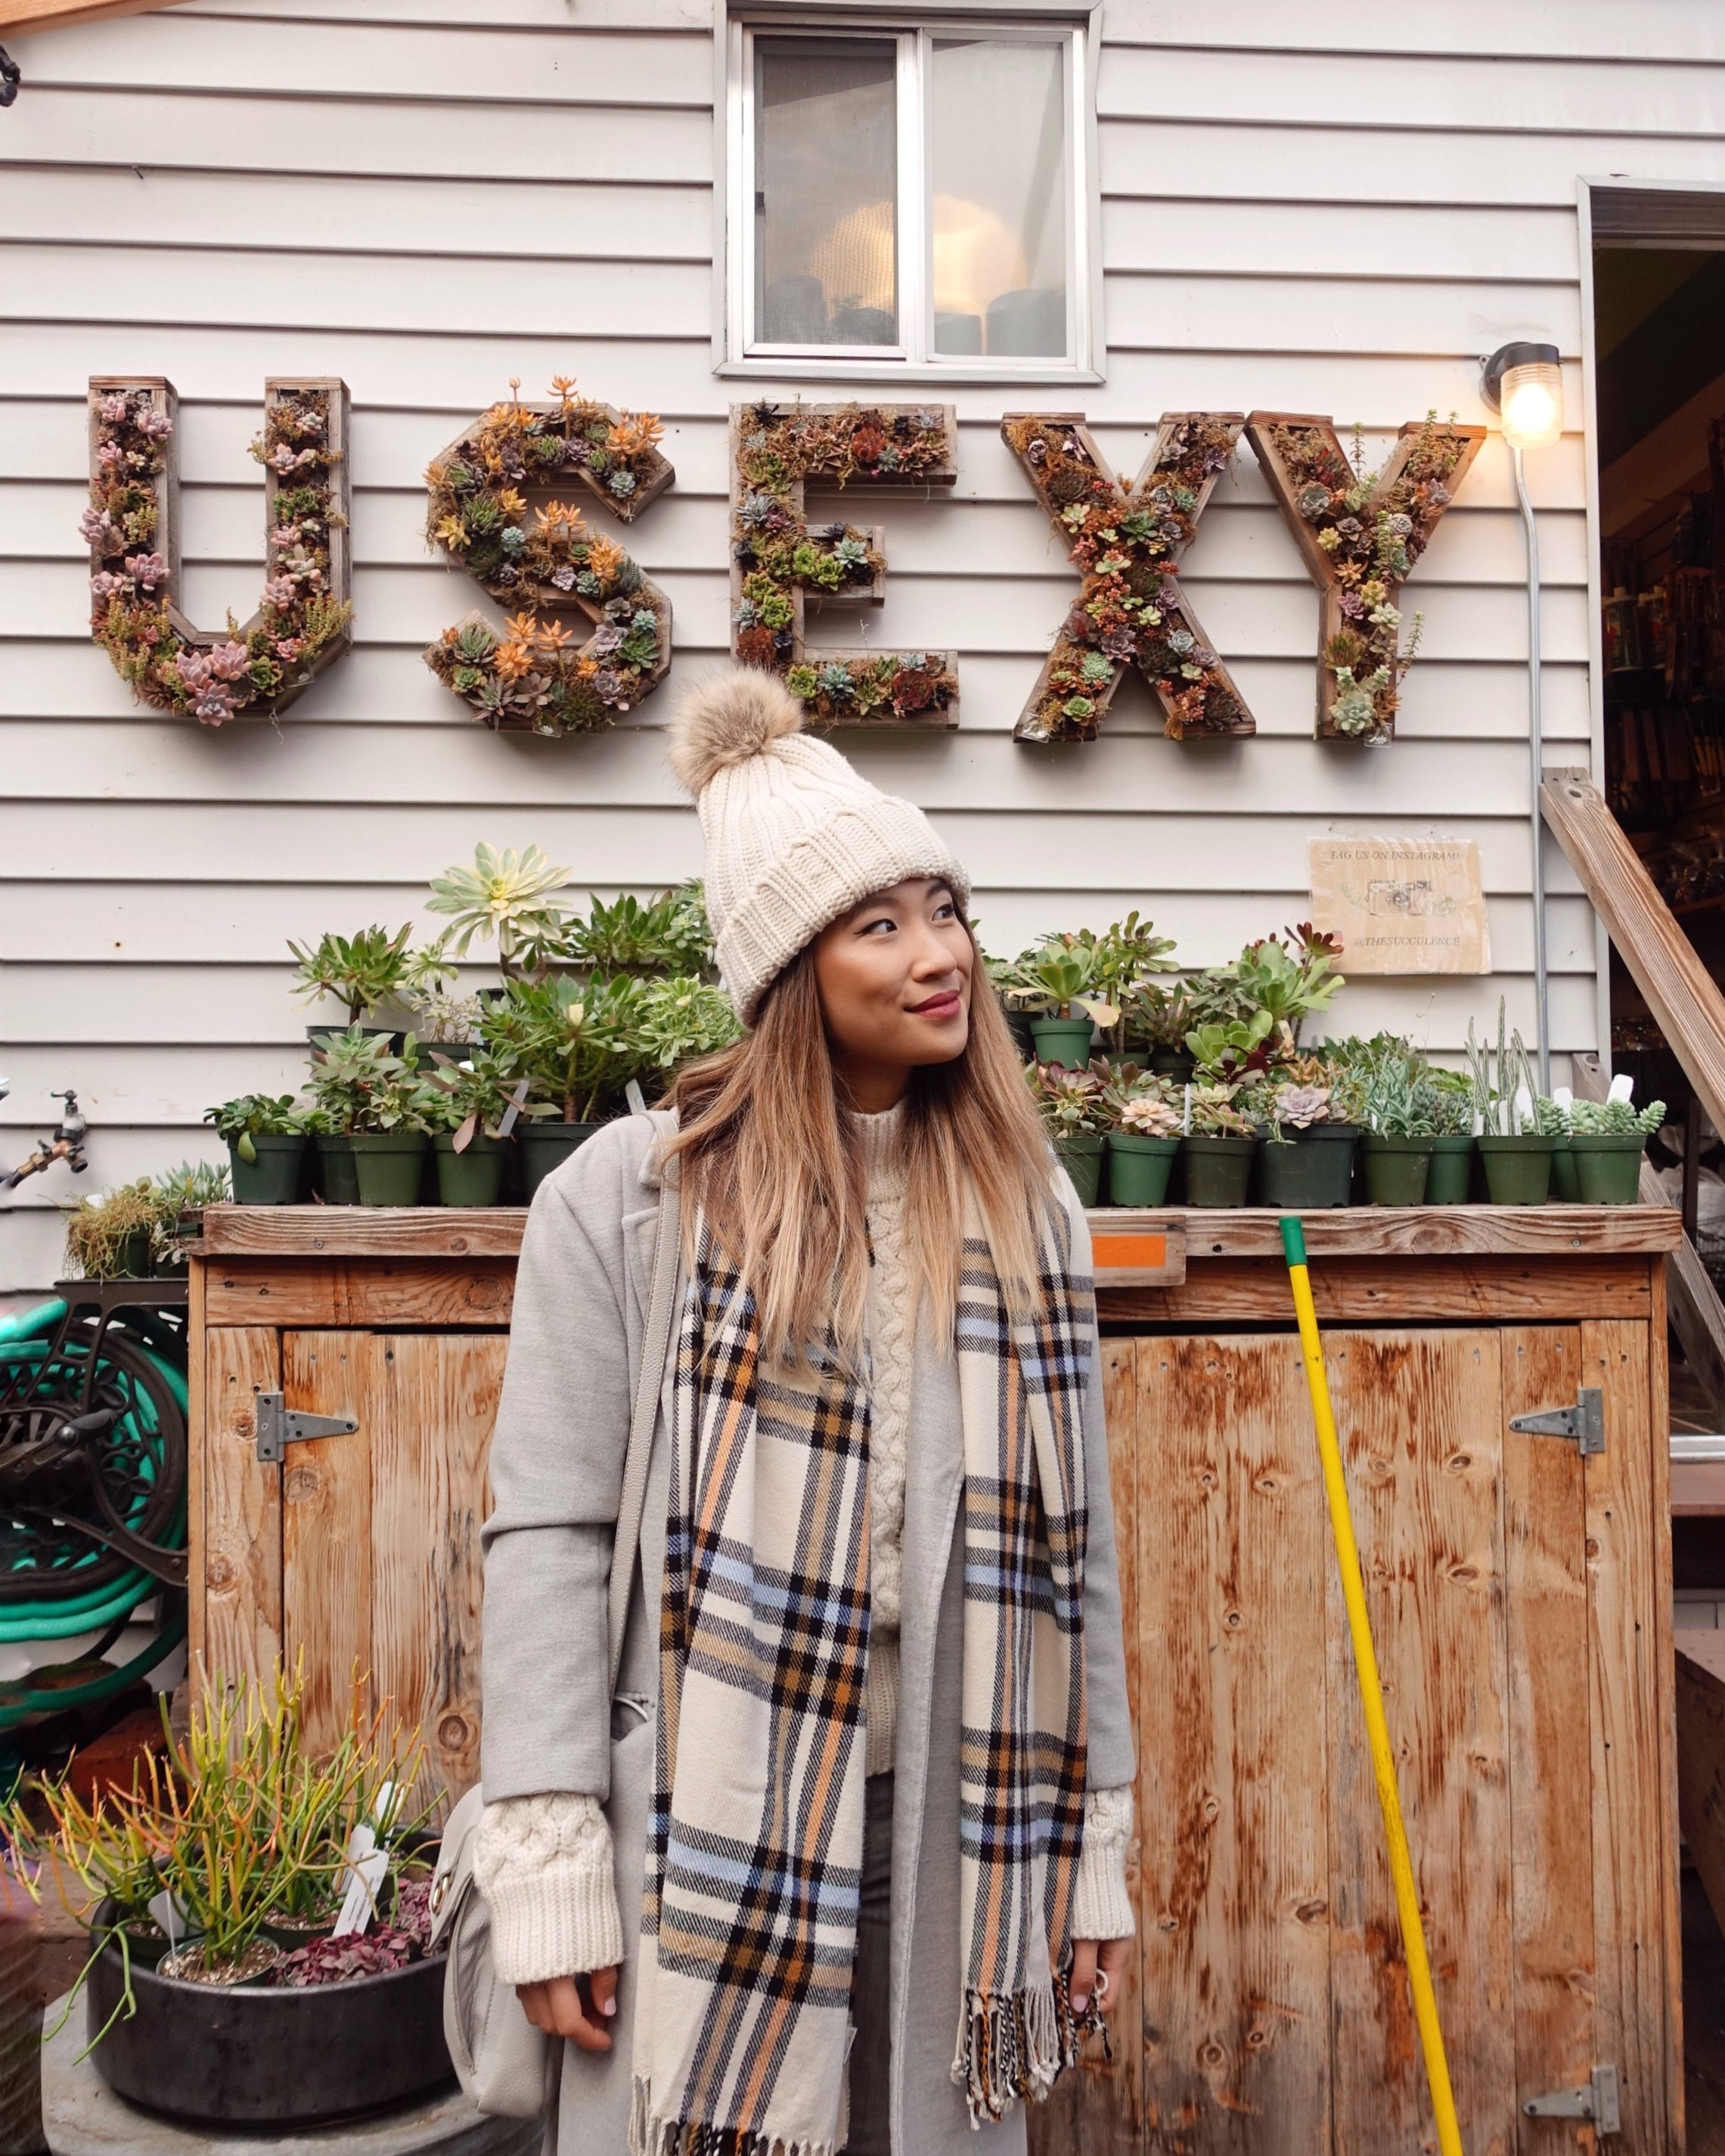 Head to the back of the Succulence store to find this fun USEXY sign!